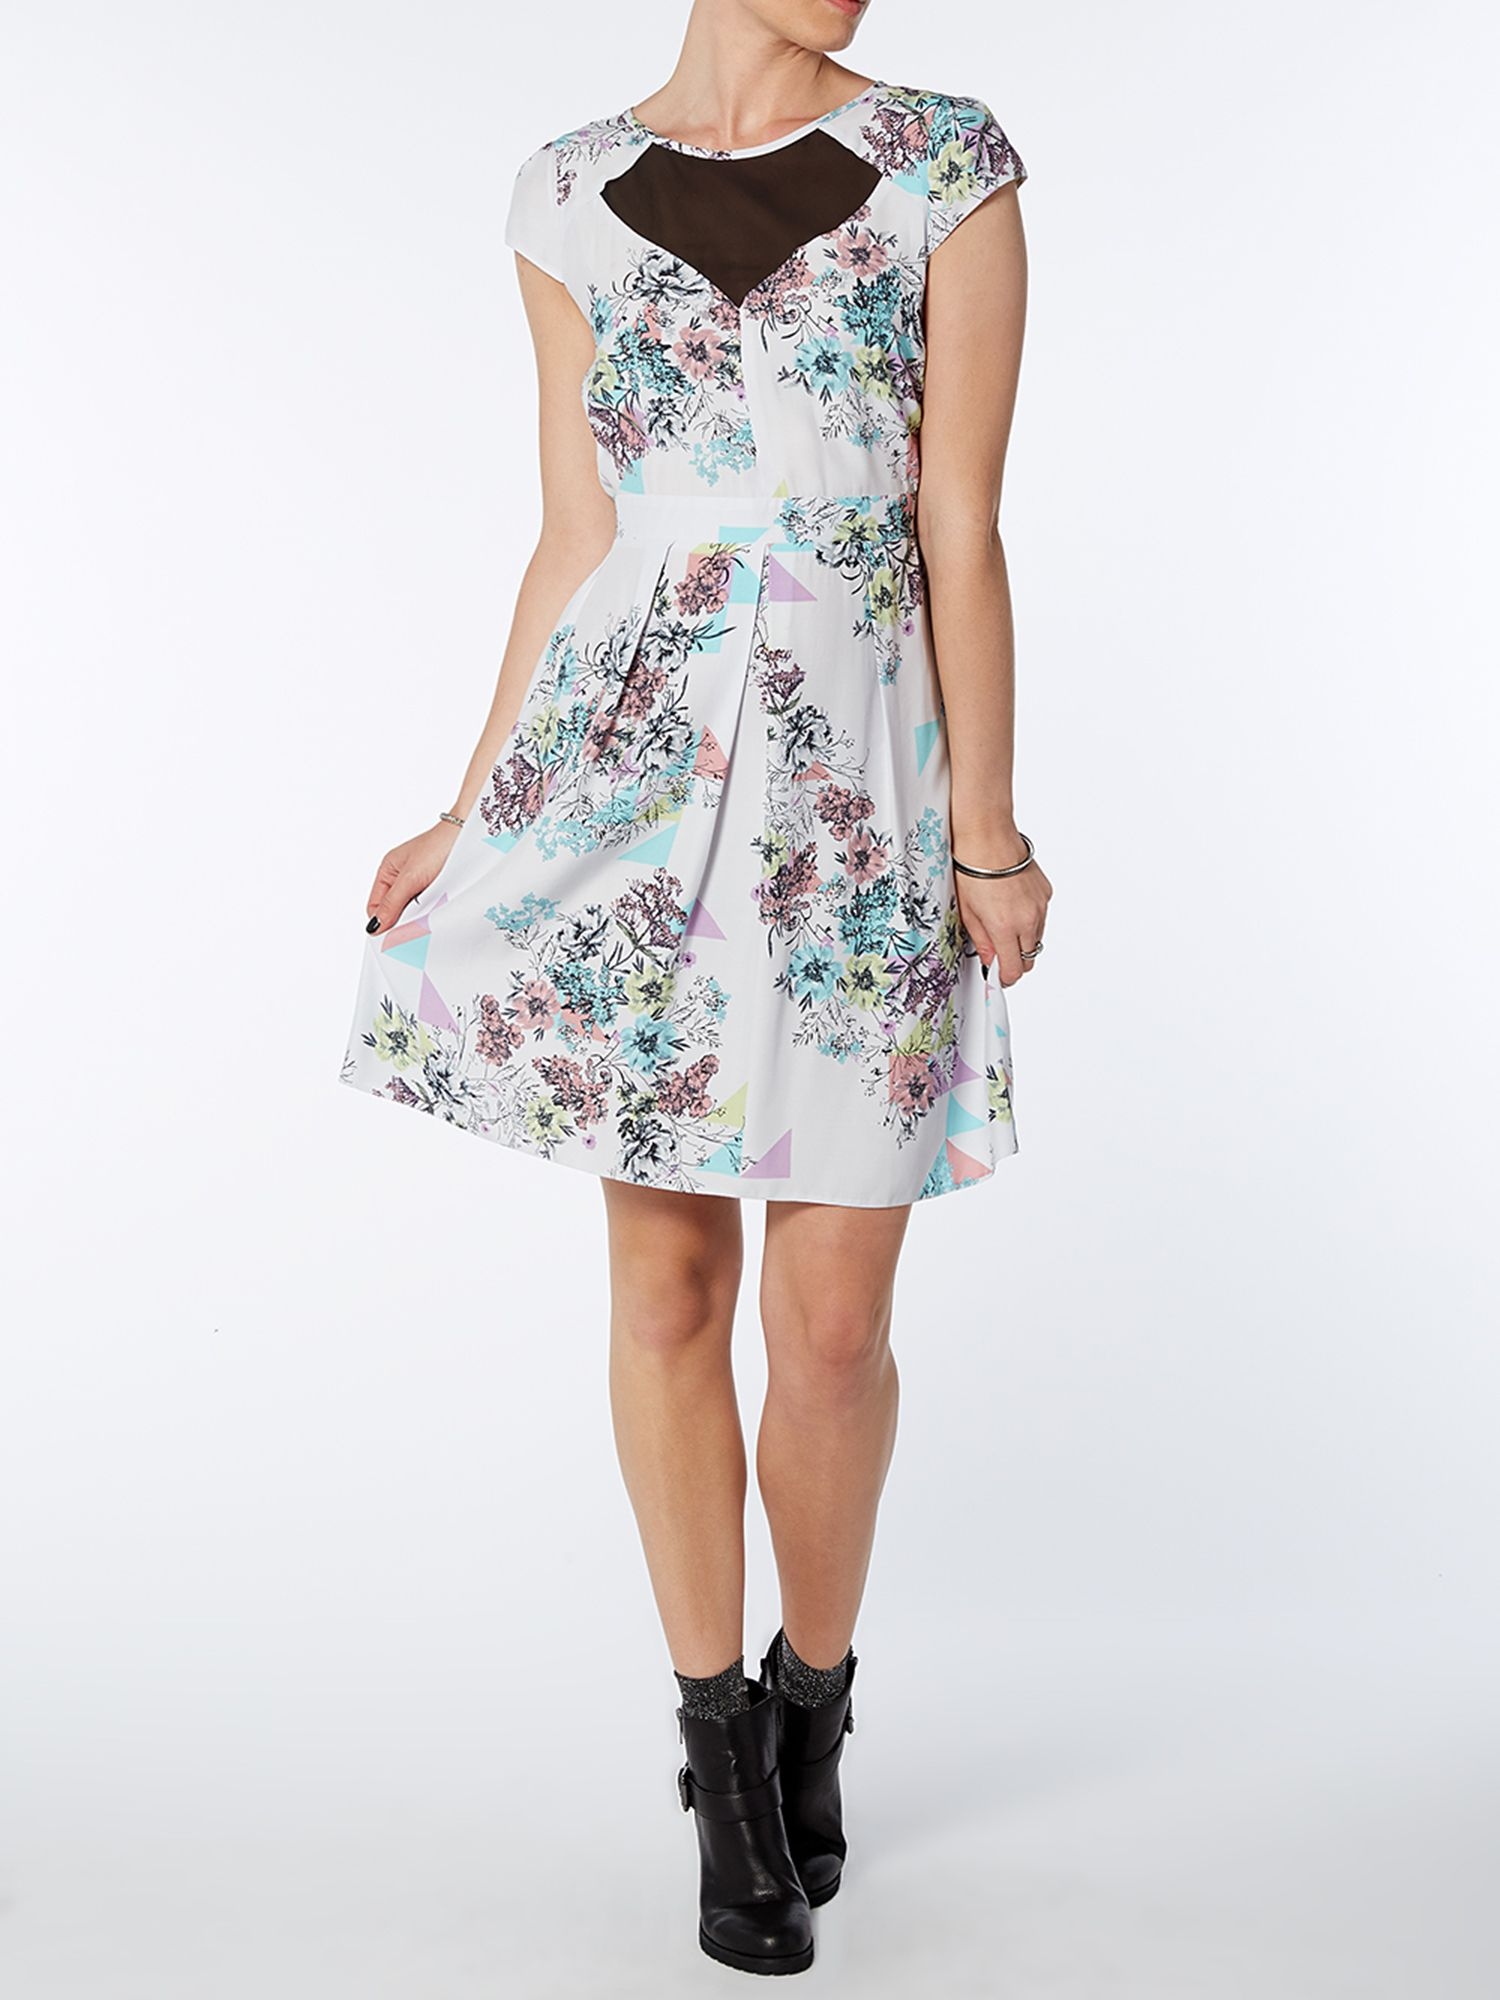 Geo floral chiffon dress